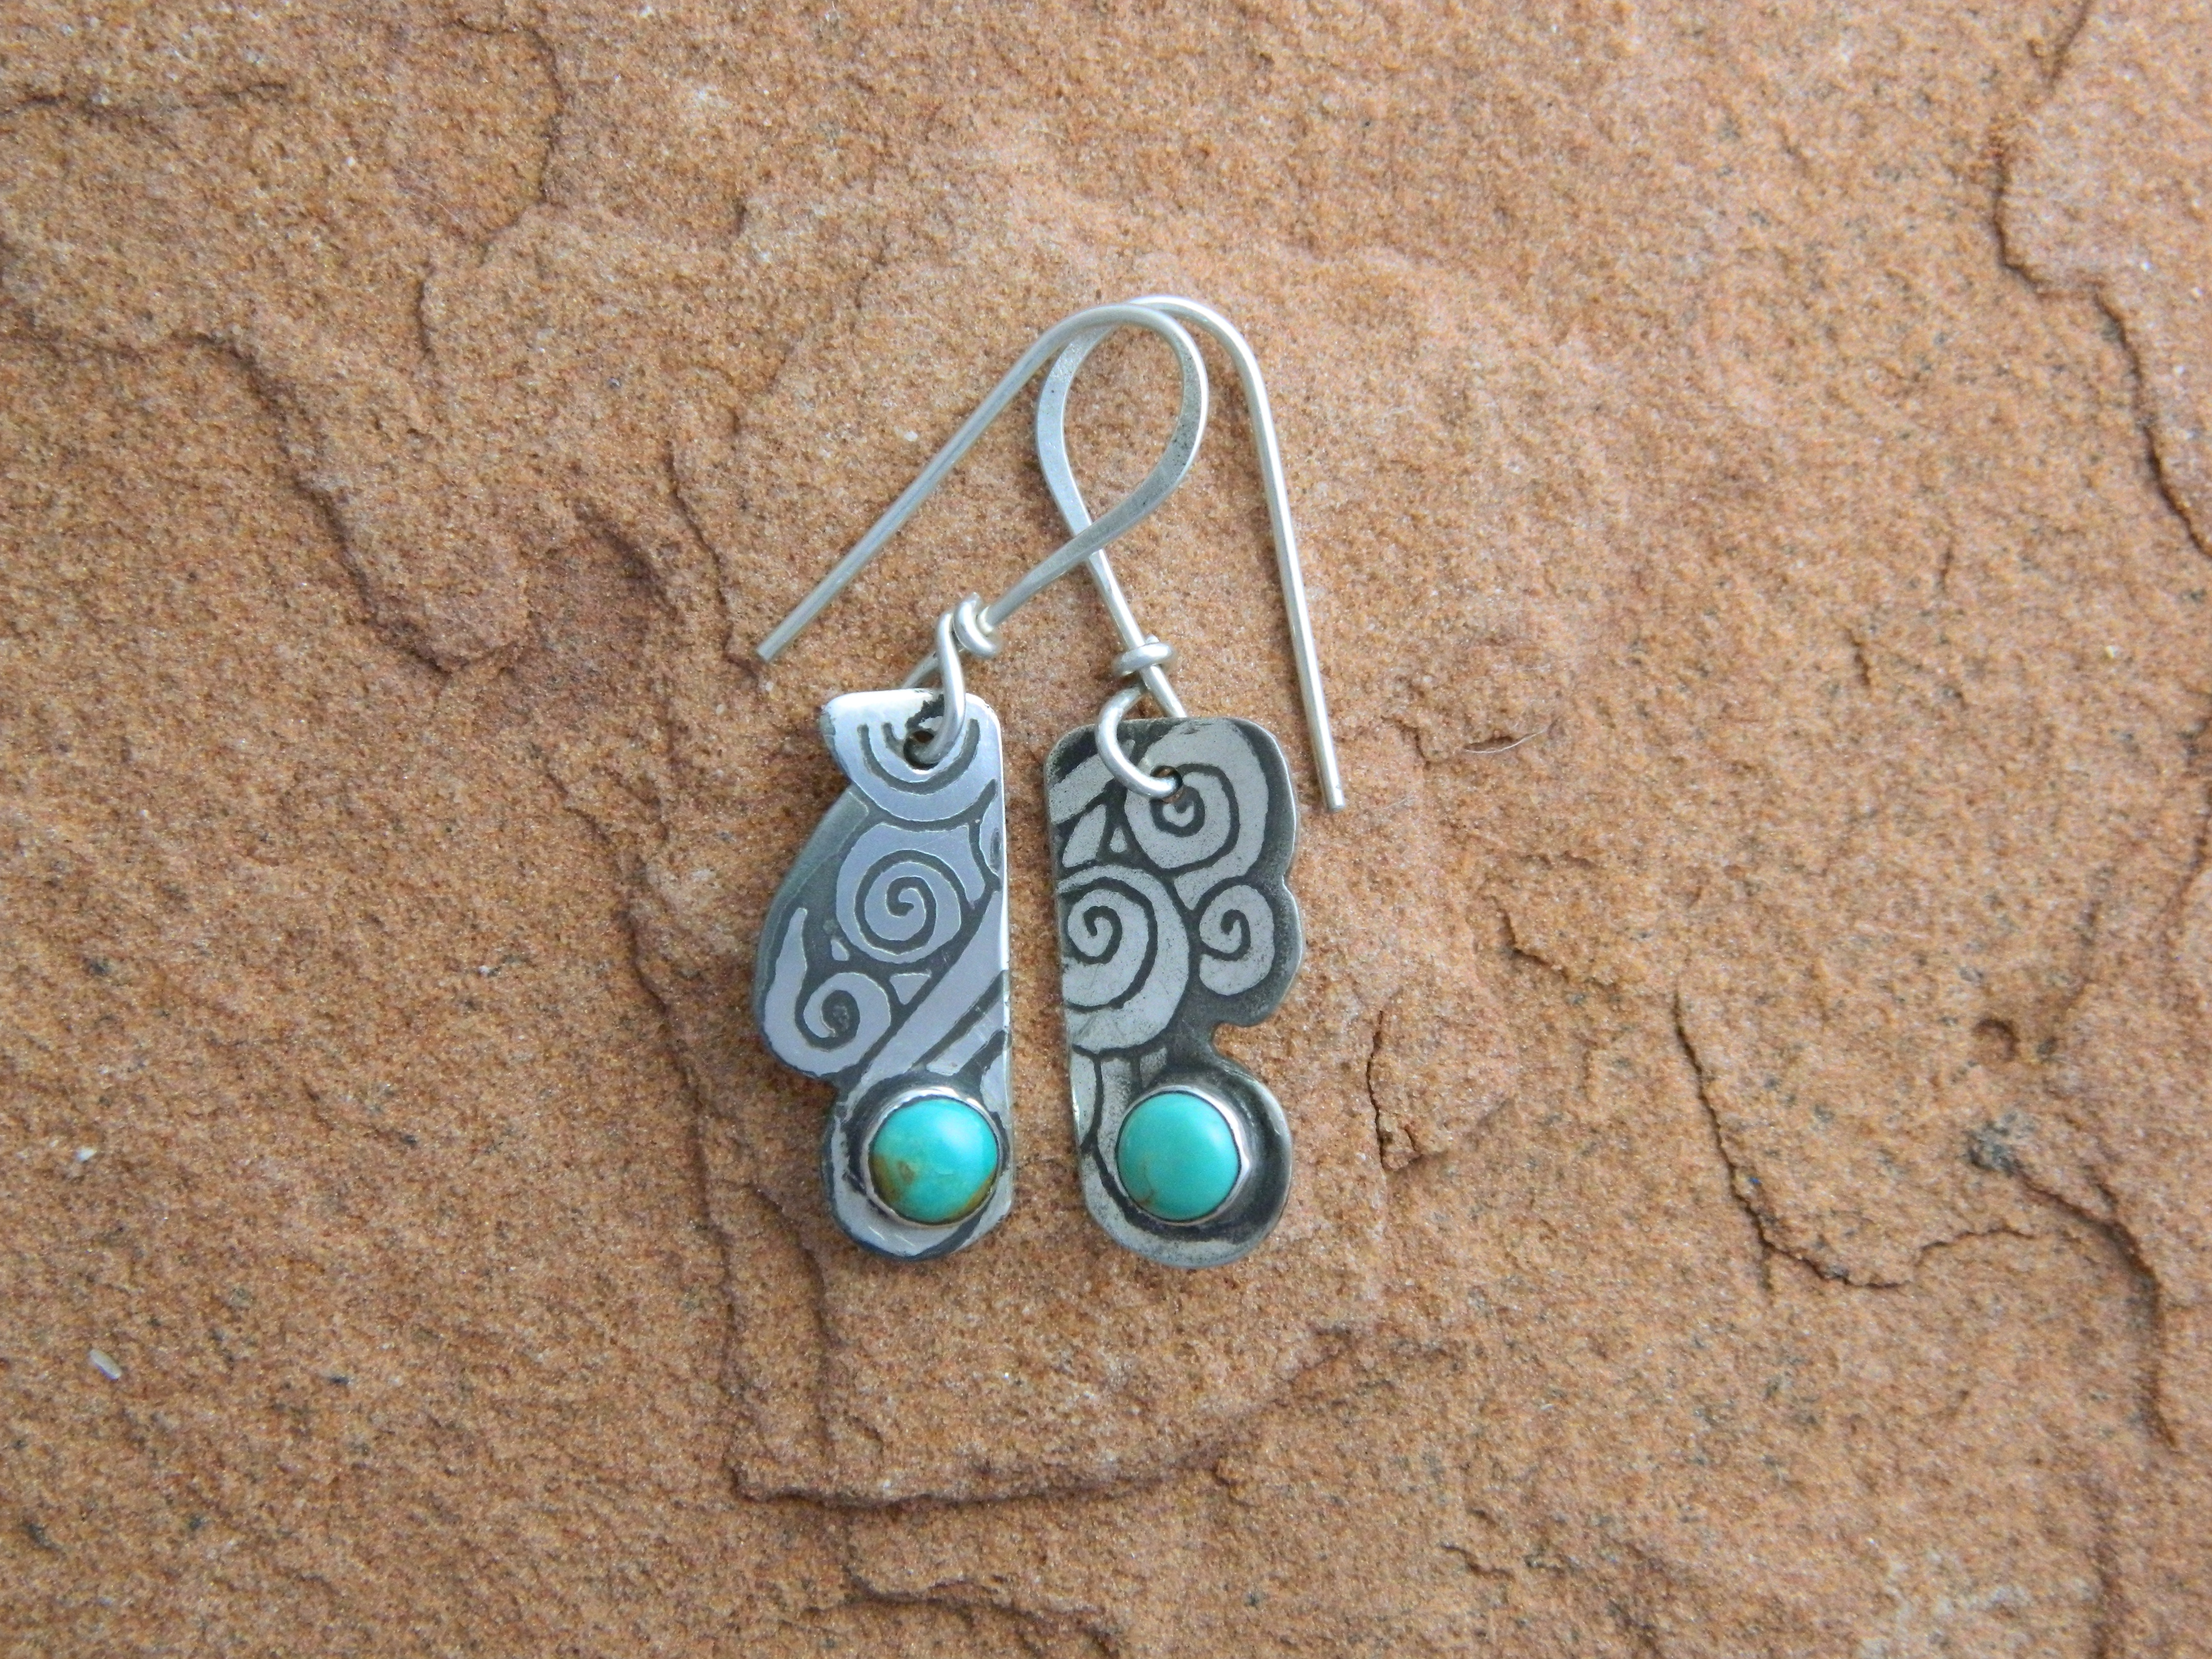 Laughing Water earrings